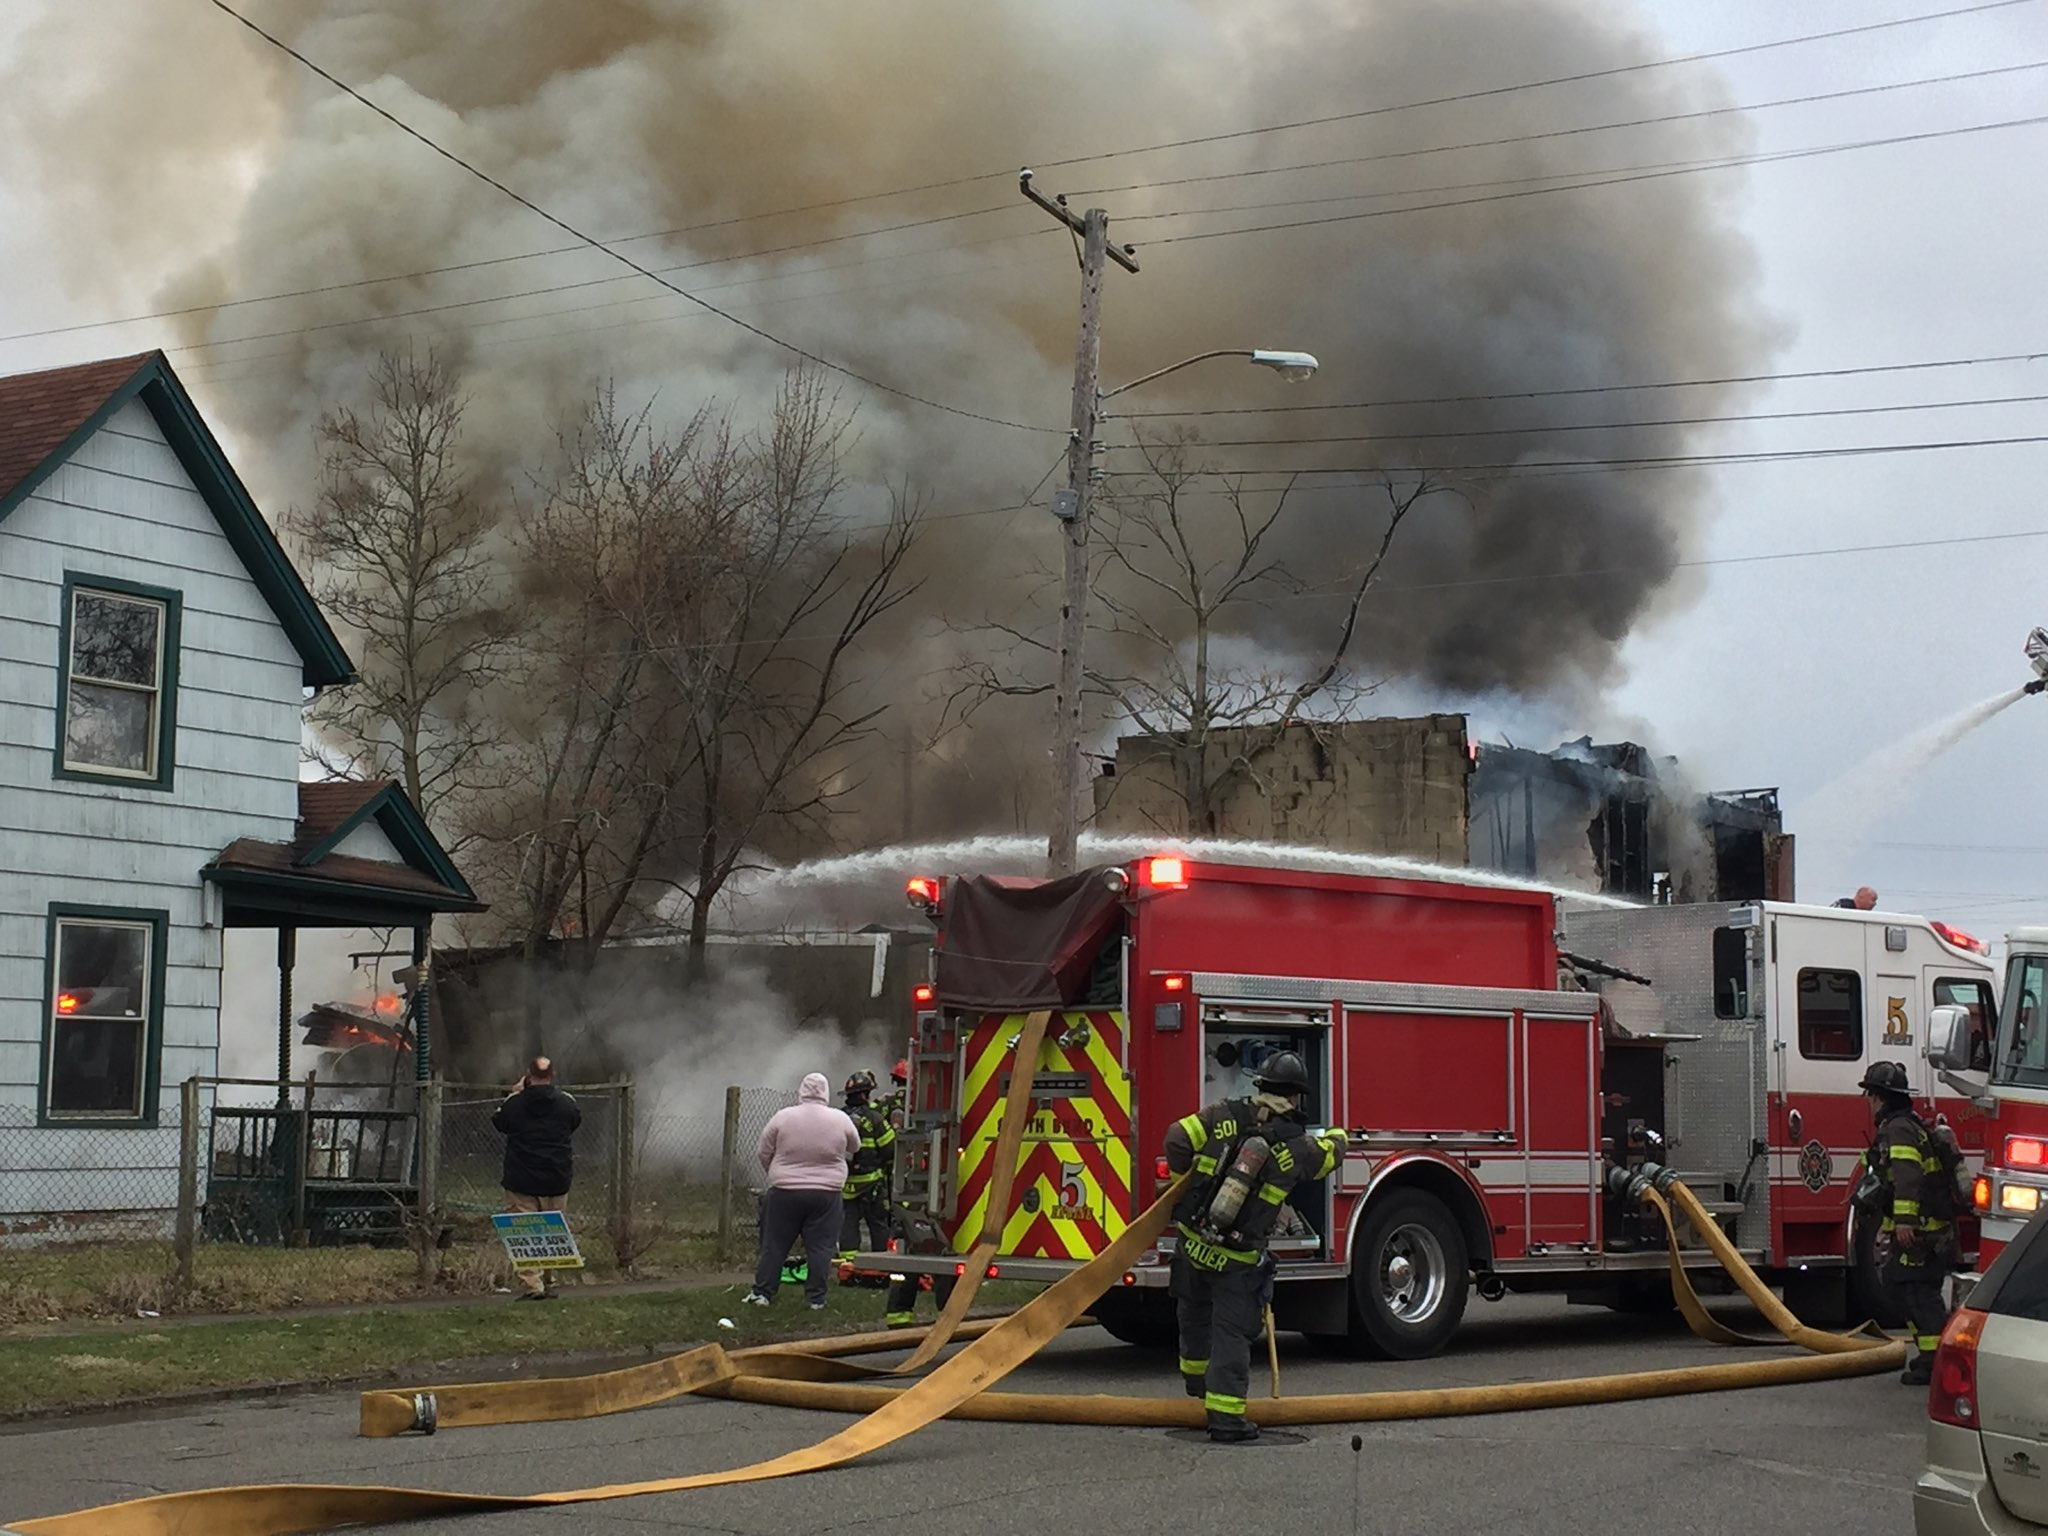 Crews battle large fire at East Dubail and South Michigan. // WSBT 22